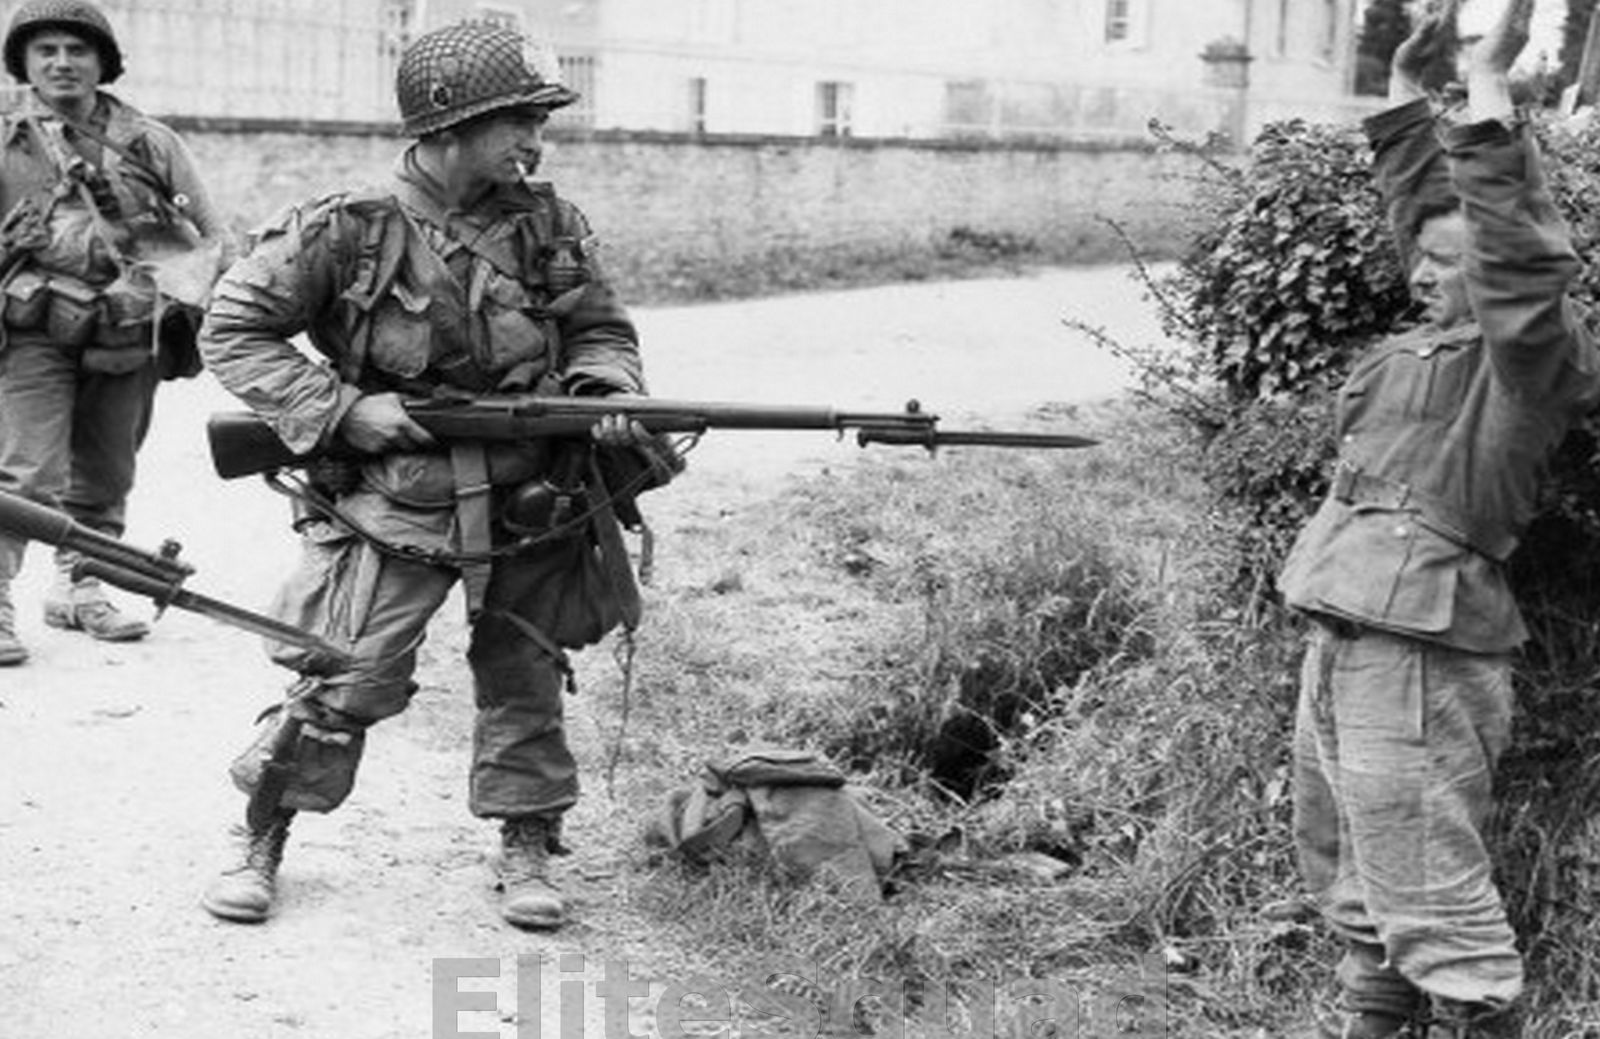 $4 95 - Ww2 Photo Picture American Paratrooper Capturing A German